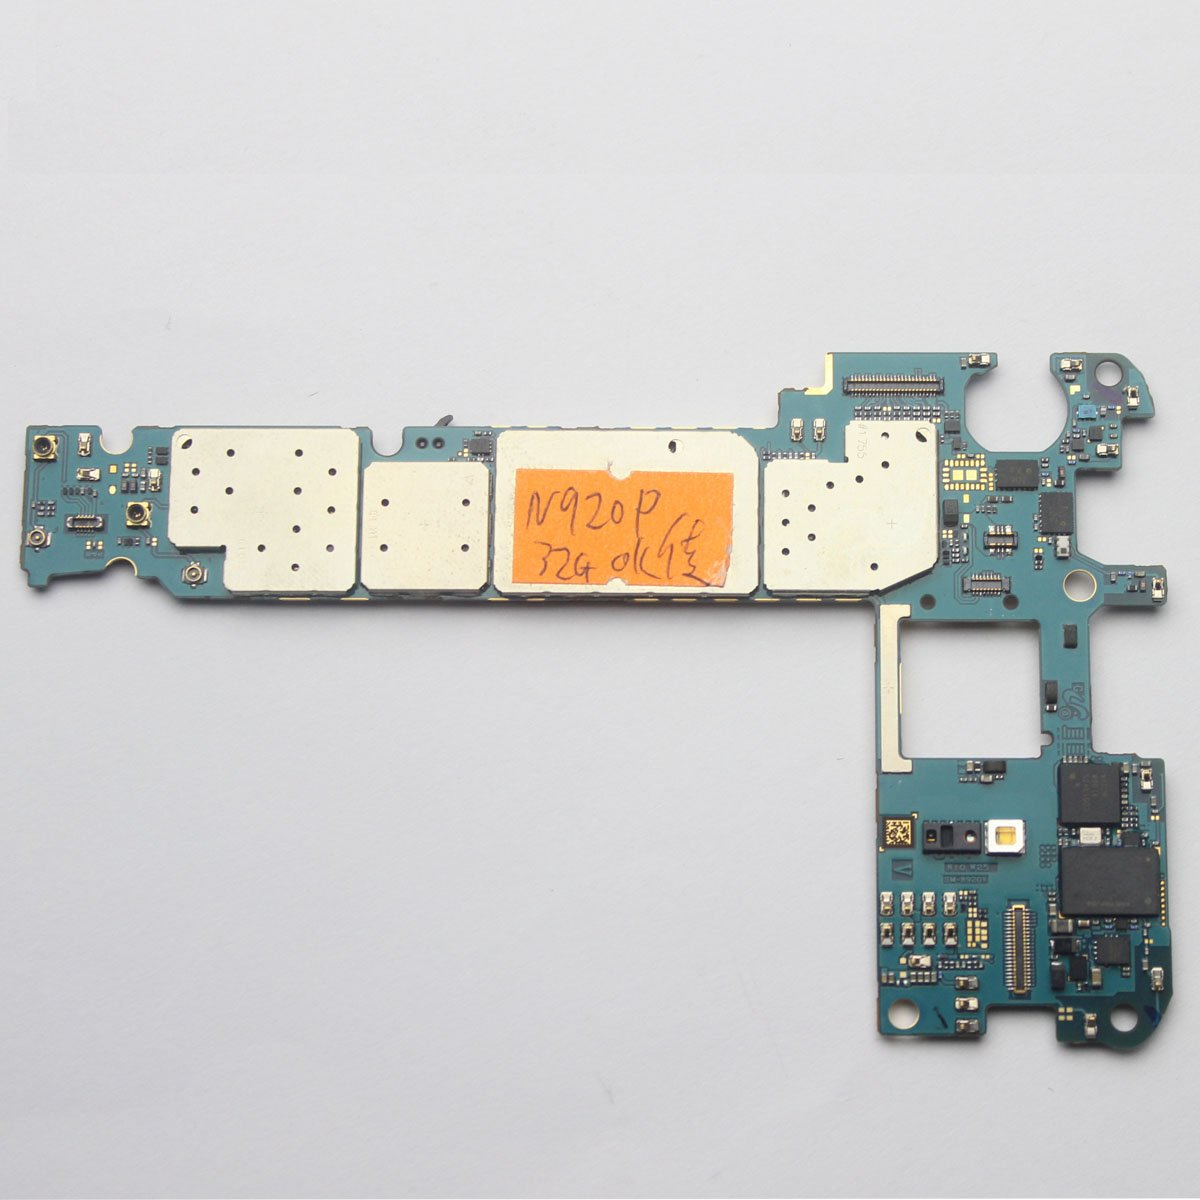 Imei Motherboard Logic Board Clean For Samsung Galaxy Request Note 5 N920p 32gb Unlocked Cell Phones Accessories